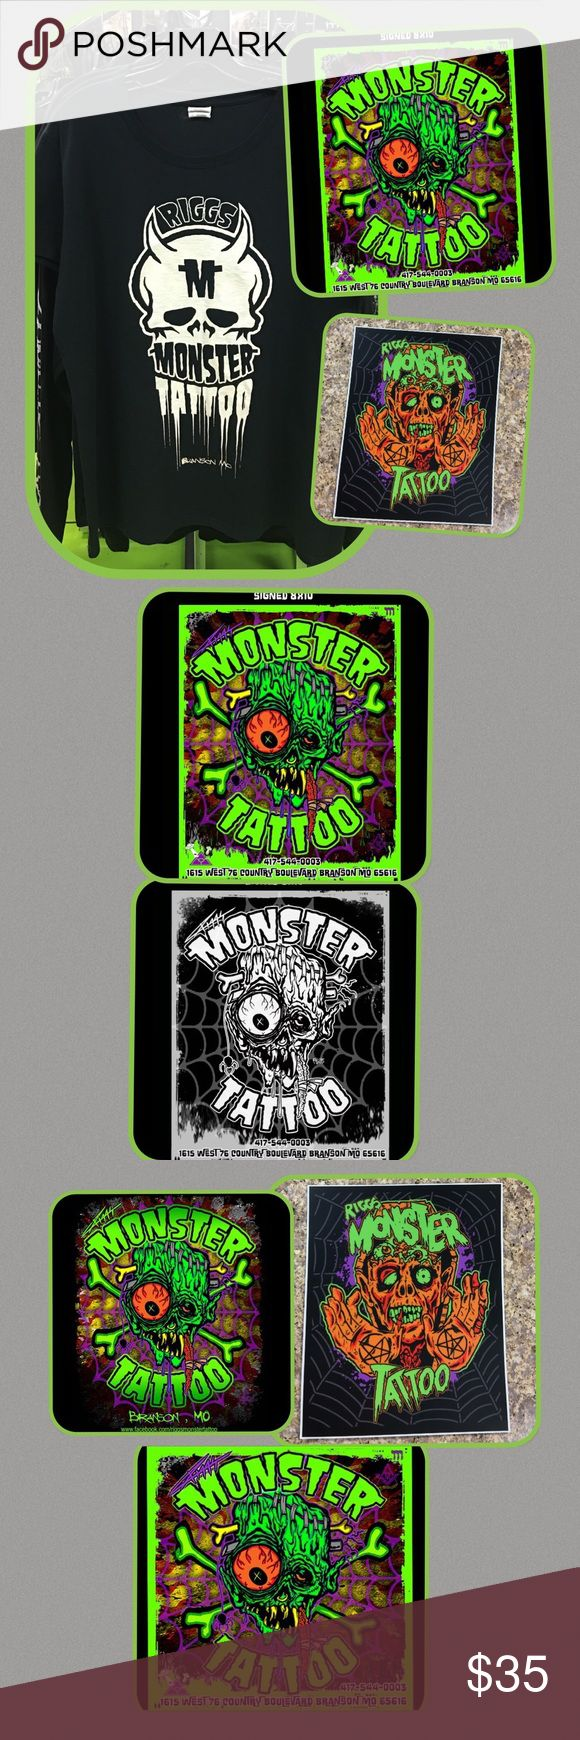 Riggs Monster Tattoo Bundle Men's Boutique Monster